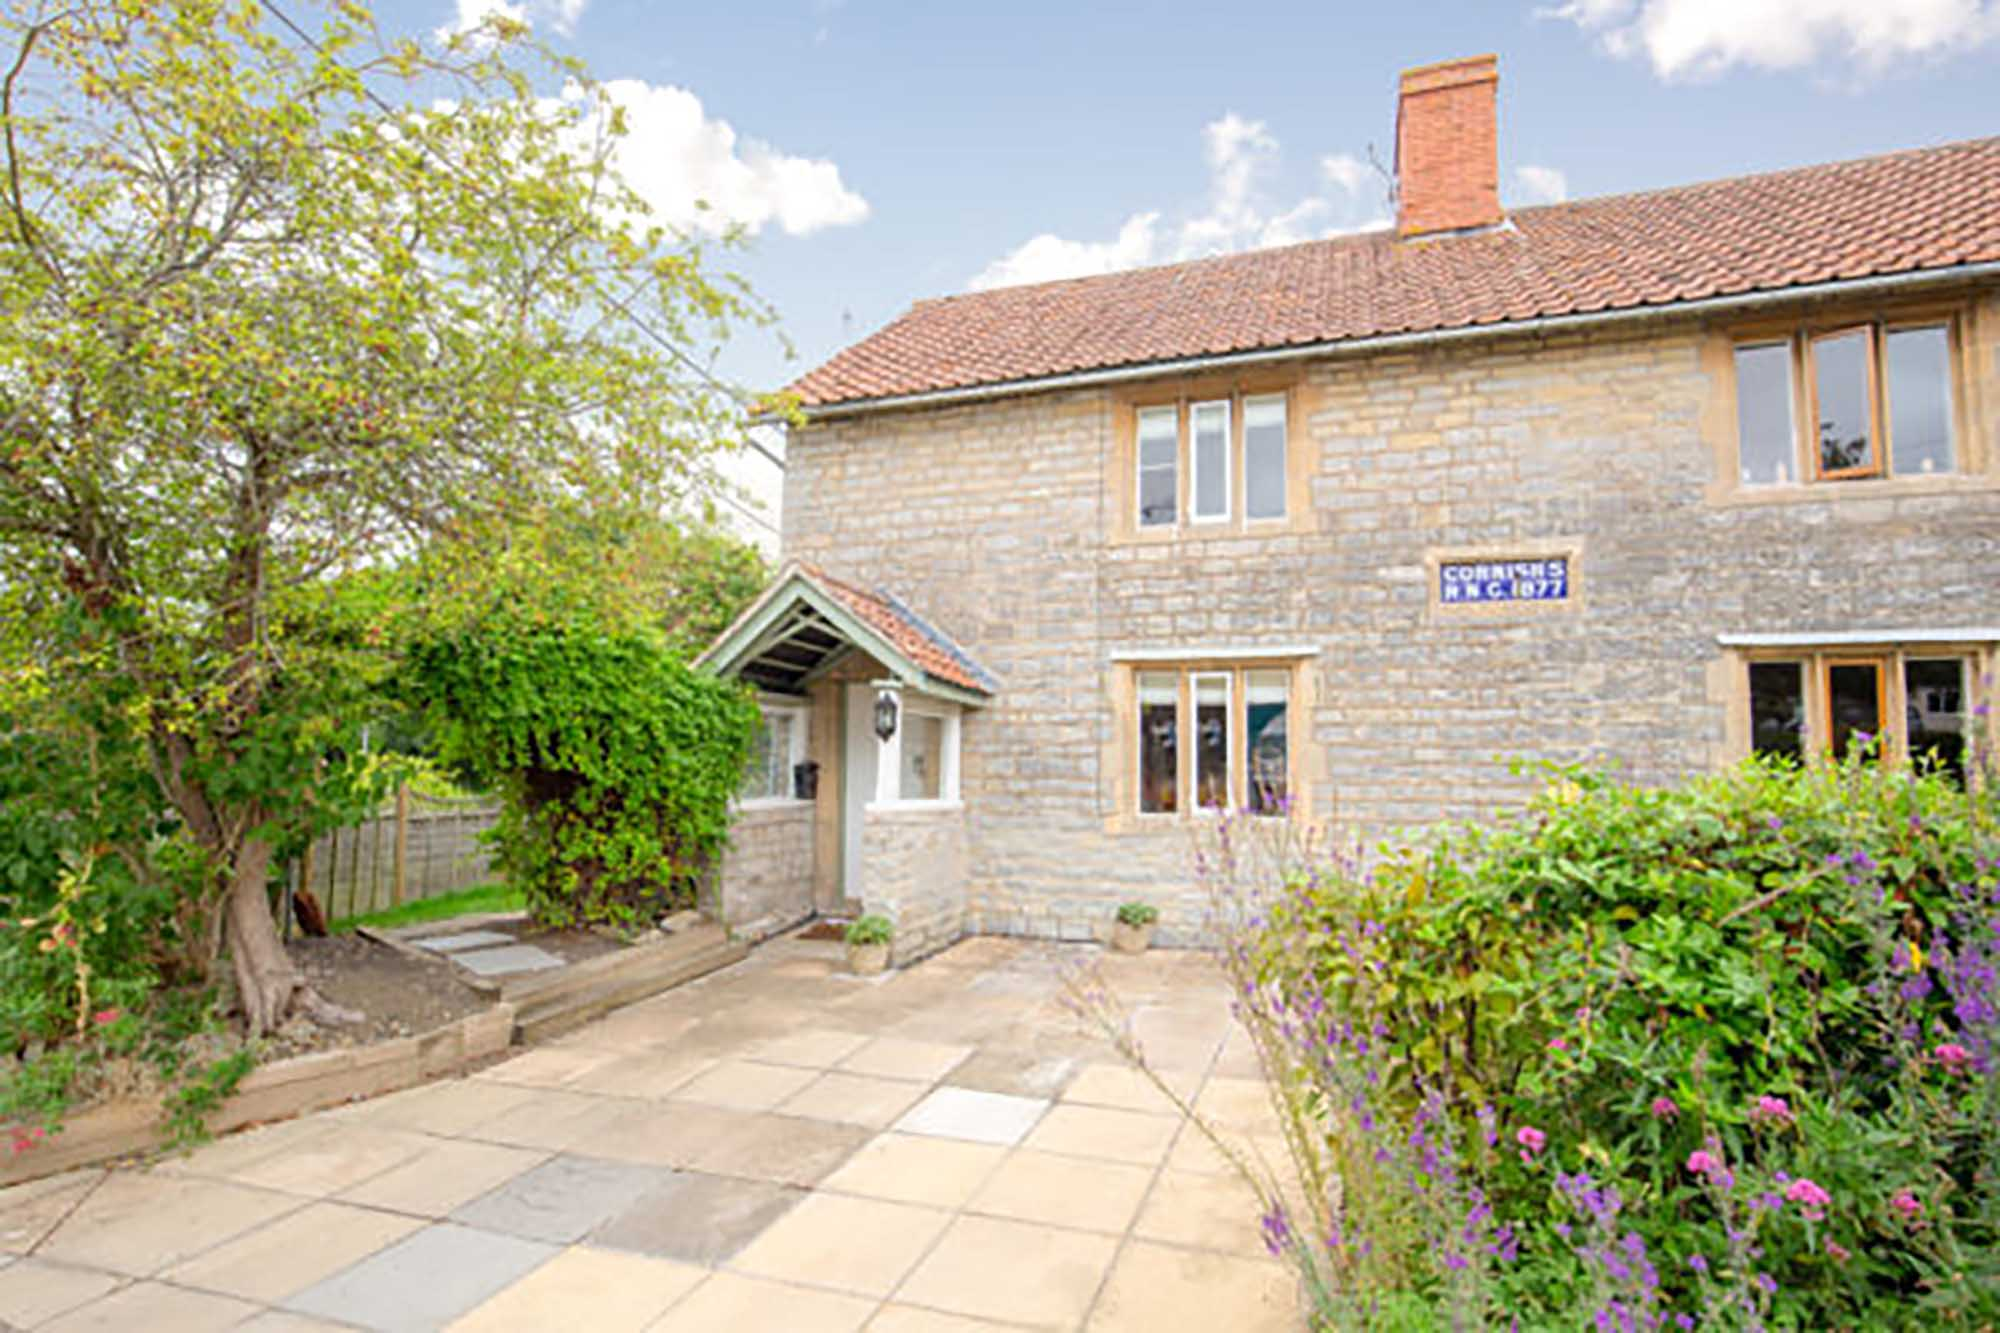 Charming and fully renovated cottage in Butleigh. BA6 8UA